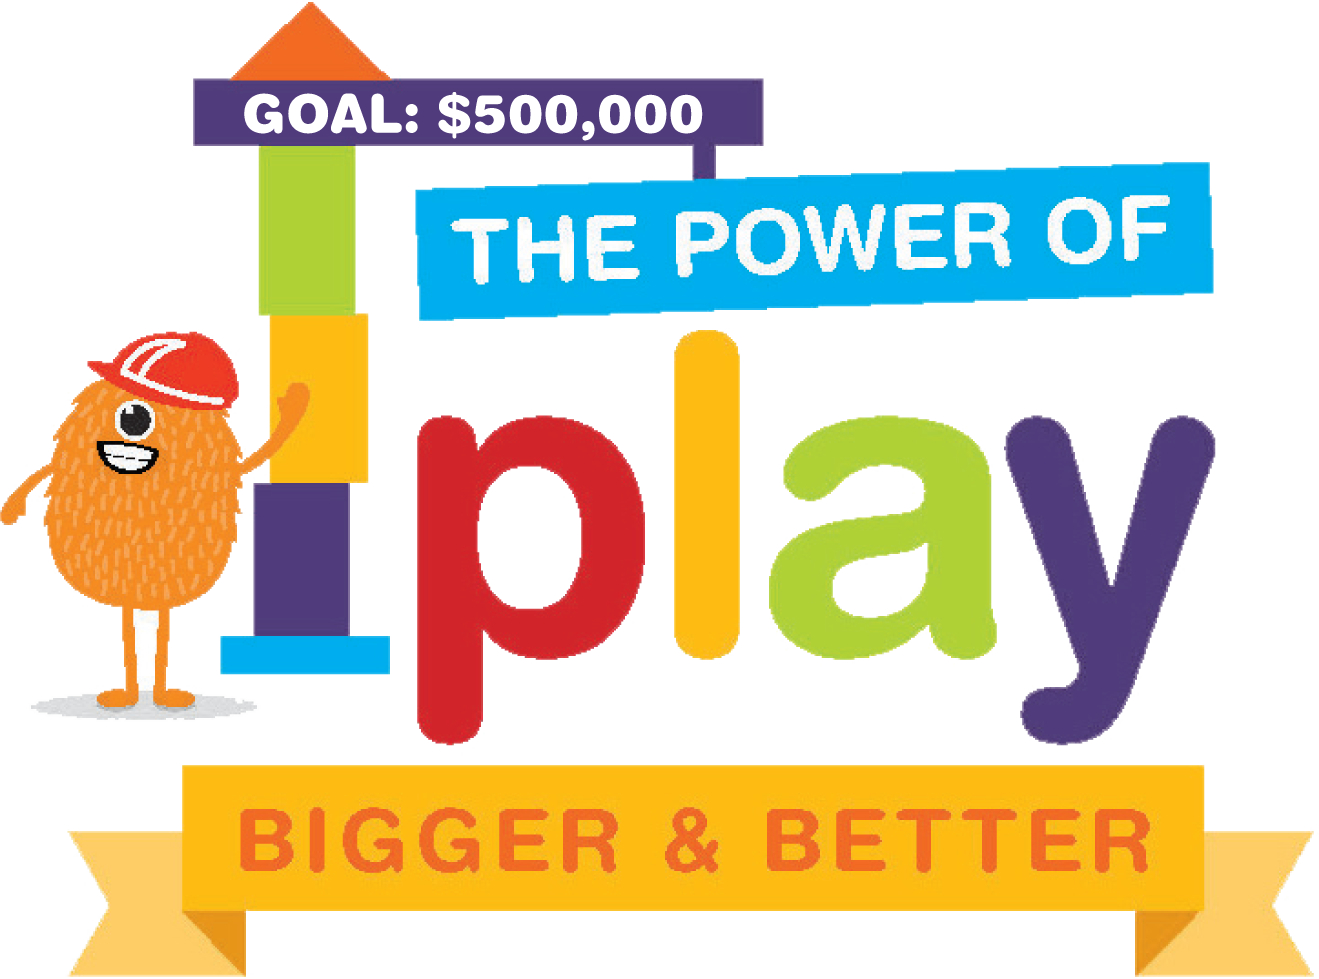 Goal: $500,000 - The Power of Play - Bigger & Better